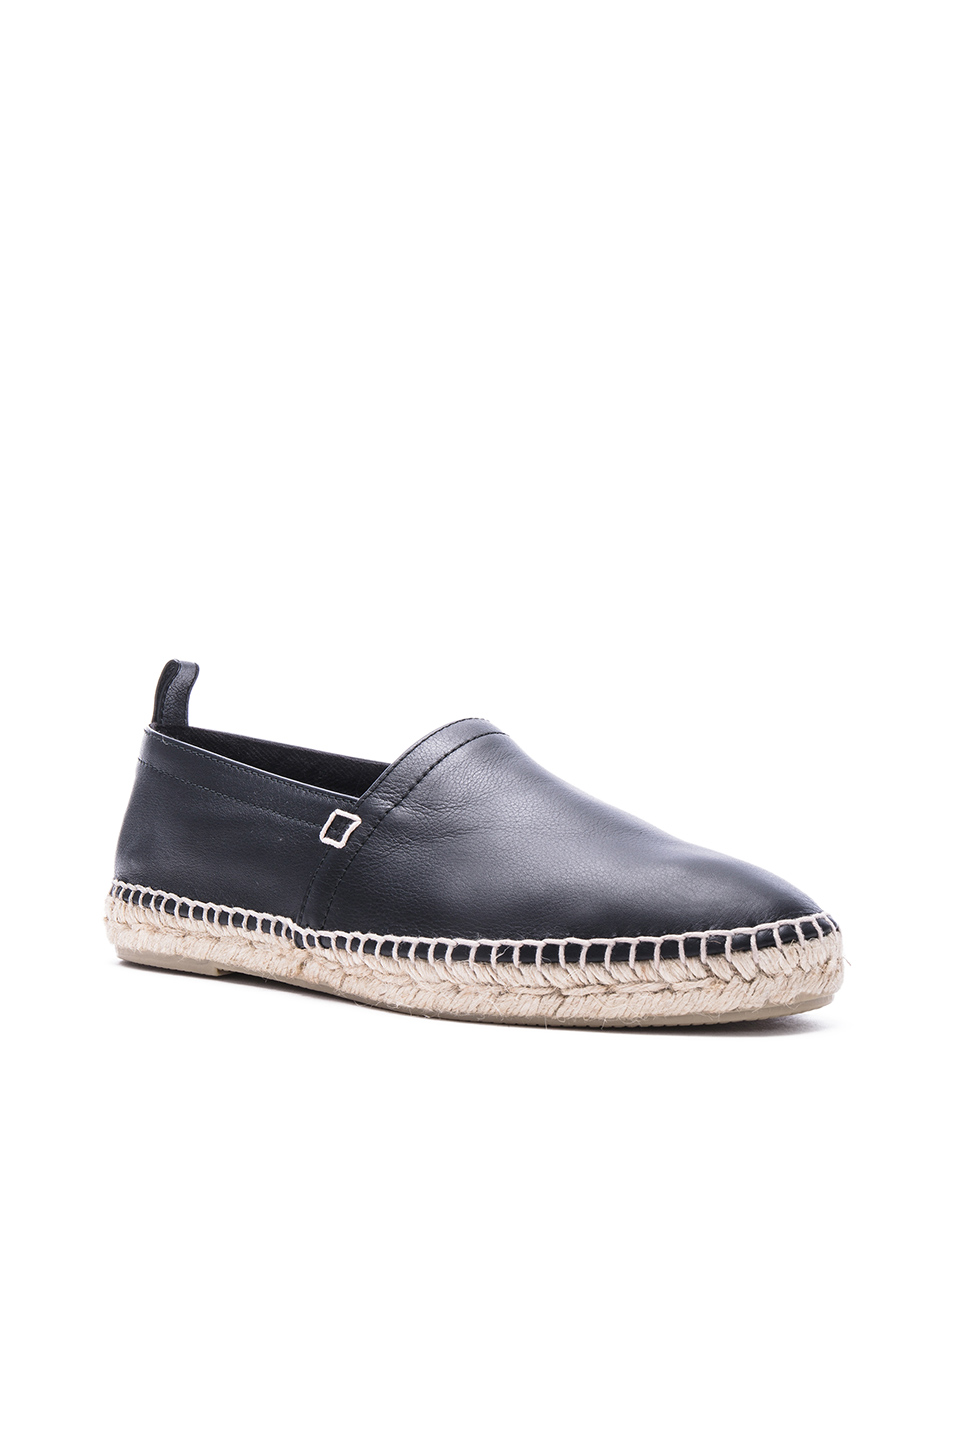 Loewe Leather Espadrilles in Black